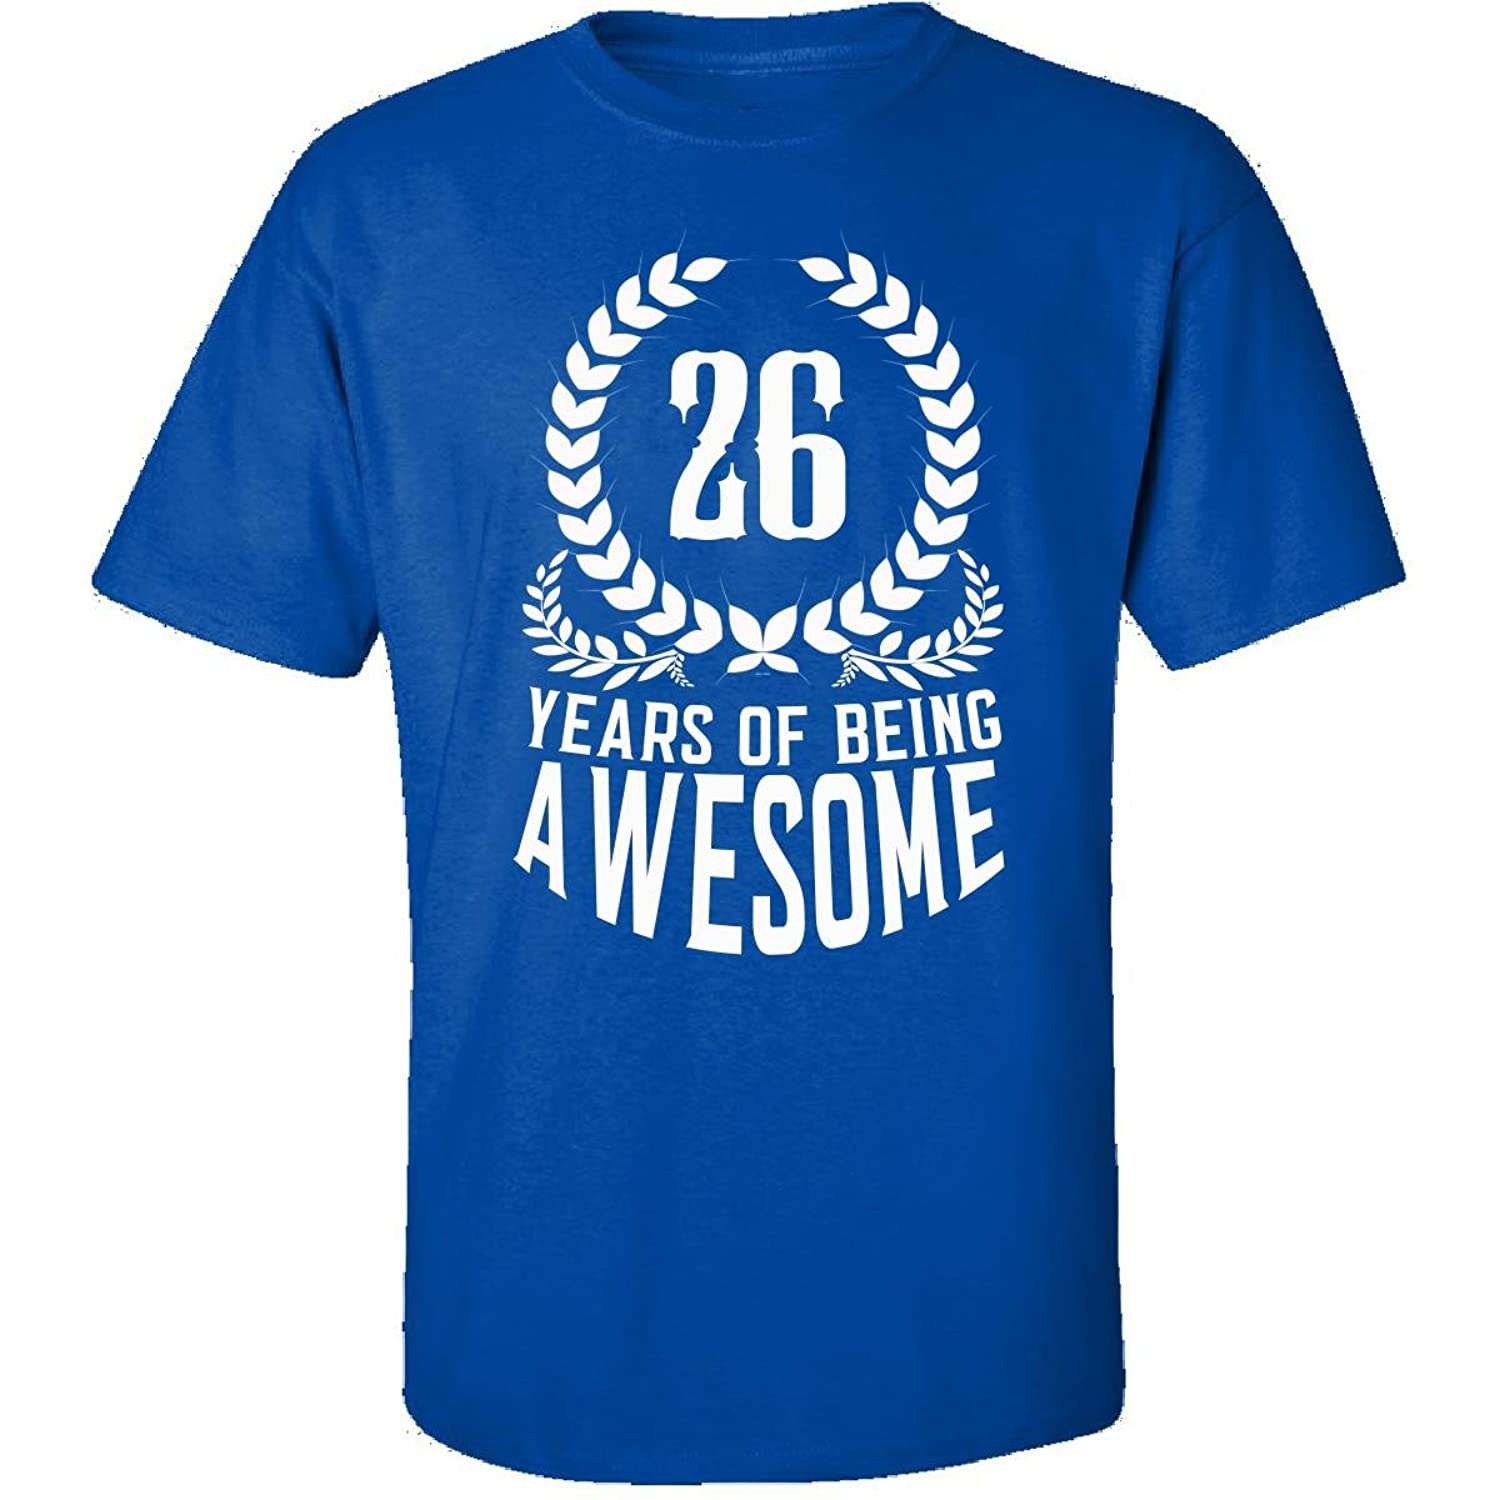 26th Birthday Gift For Men Woman 26 Years Of Being Awesome - Adult Shirt